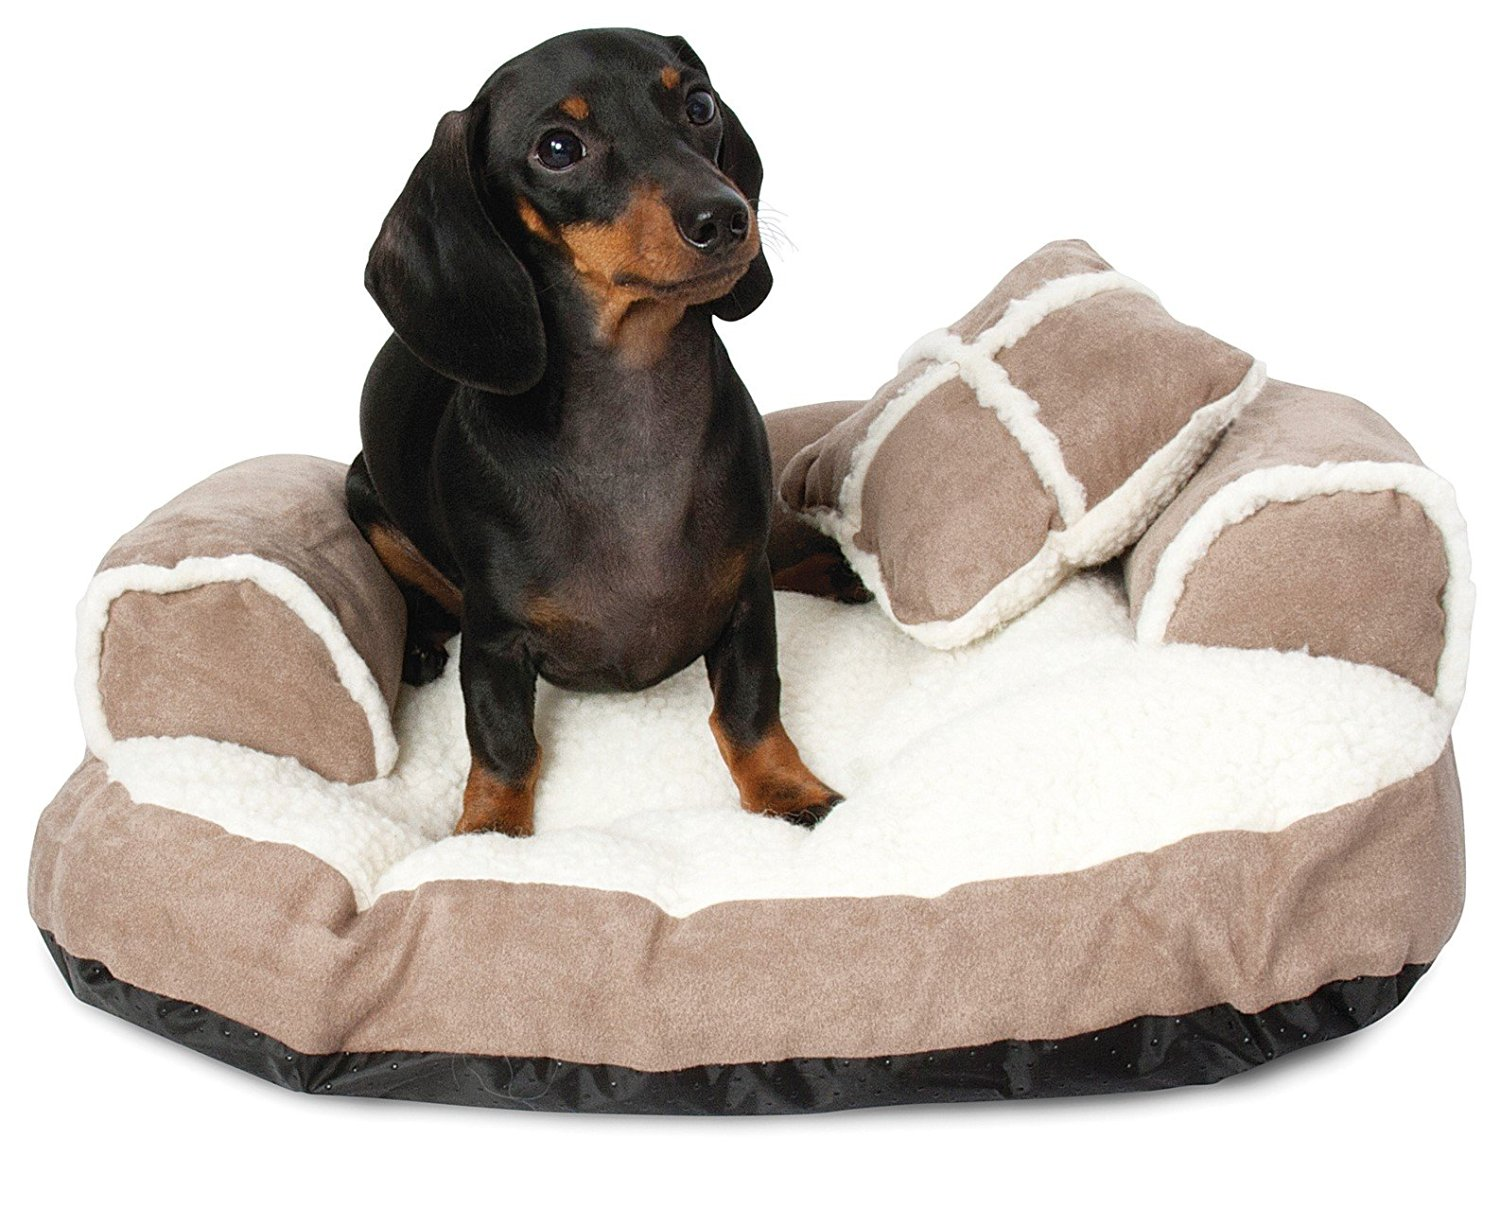 aspen pet sofa bed for dogs cats assorted colors china legs petmate sheepskin dog with pillow sleep surface